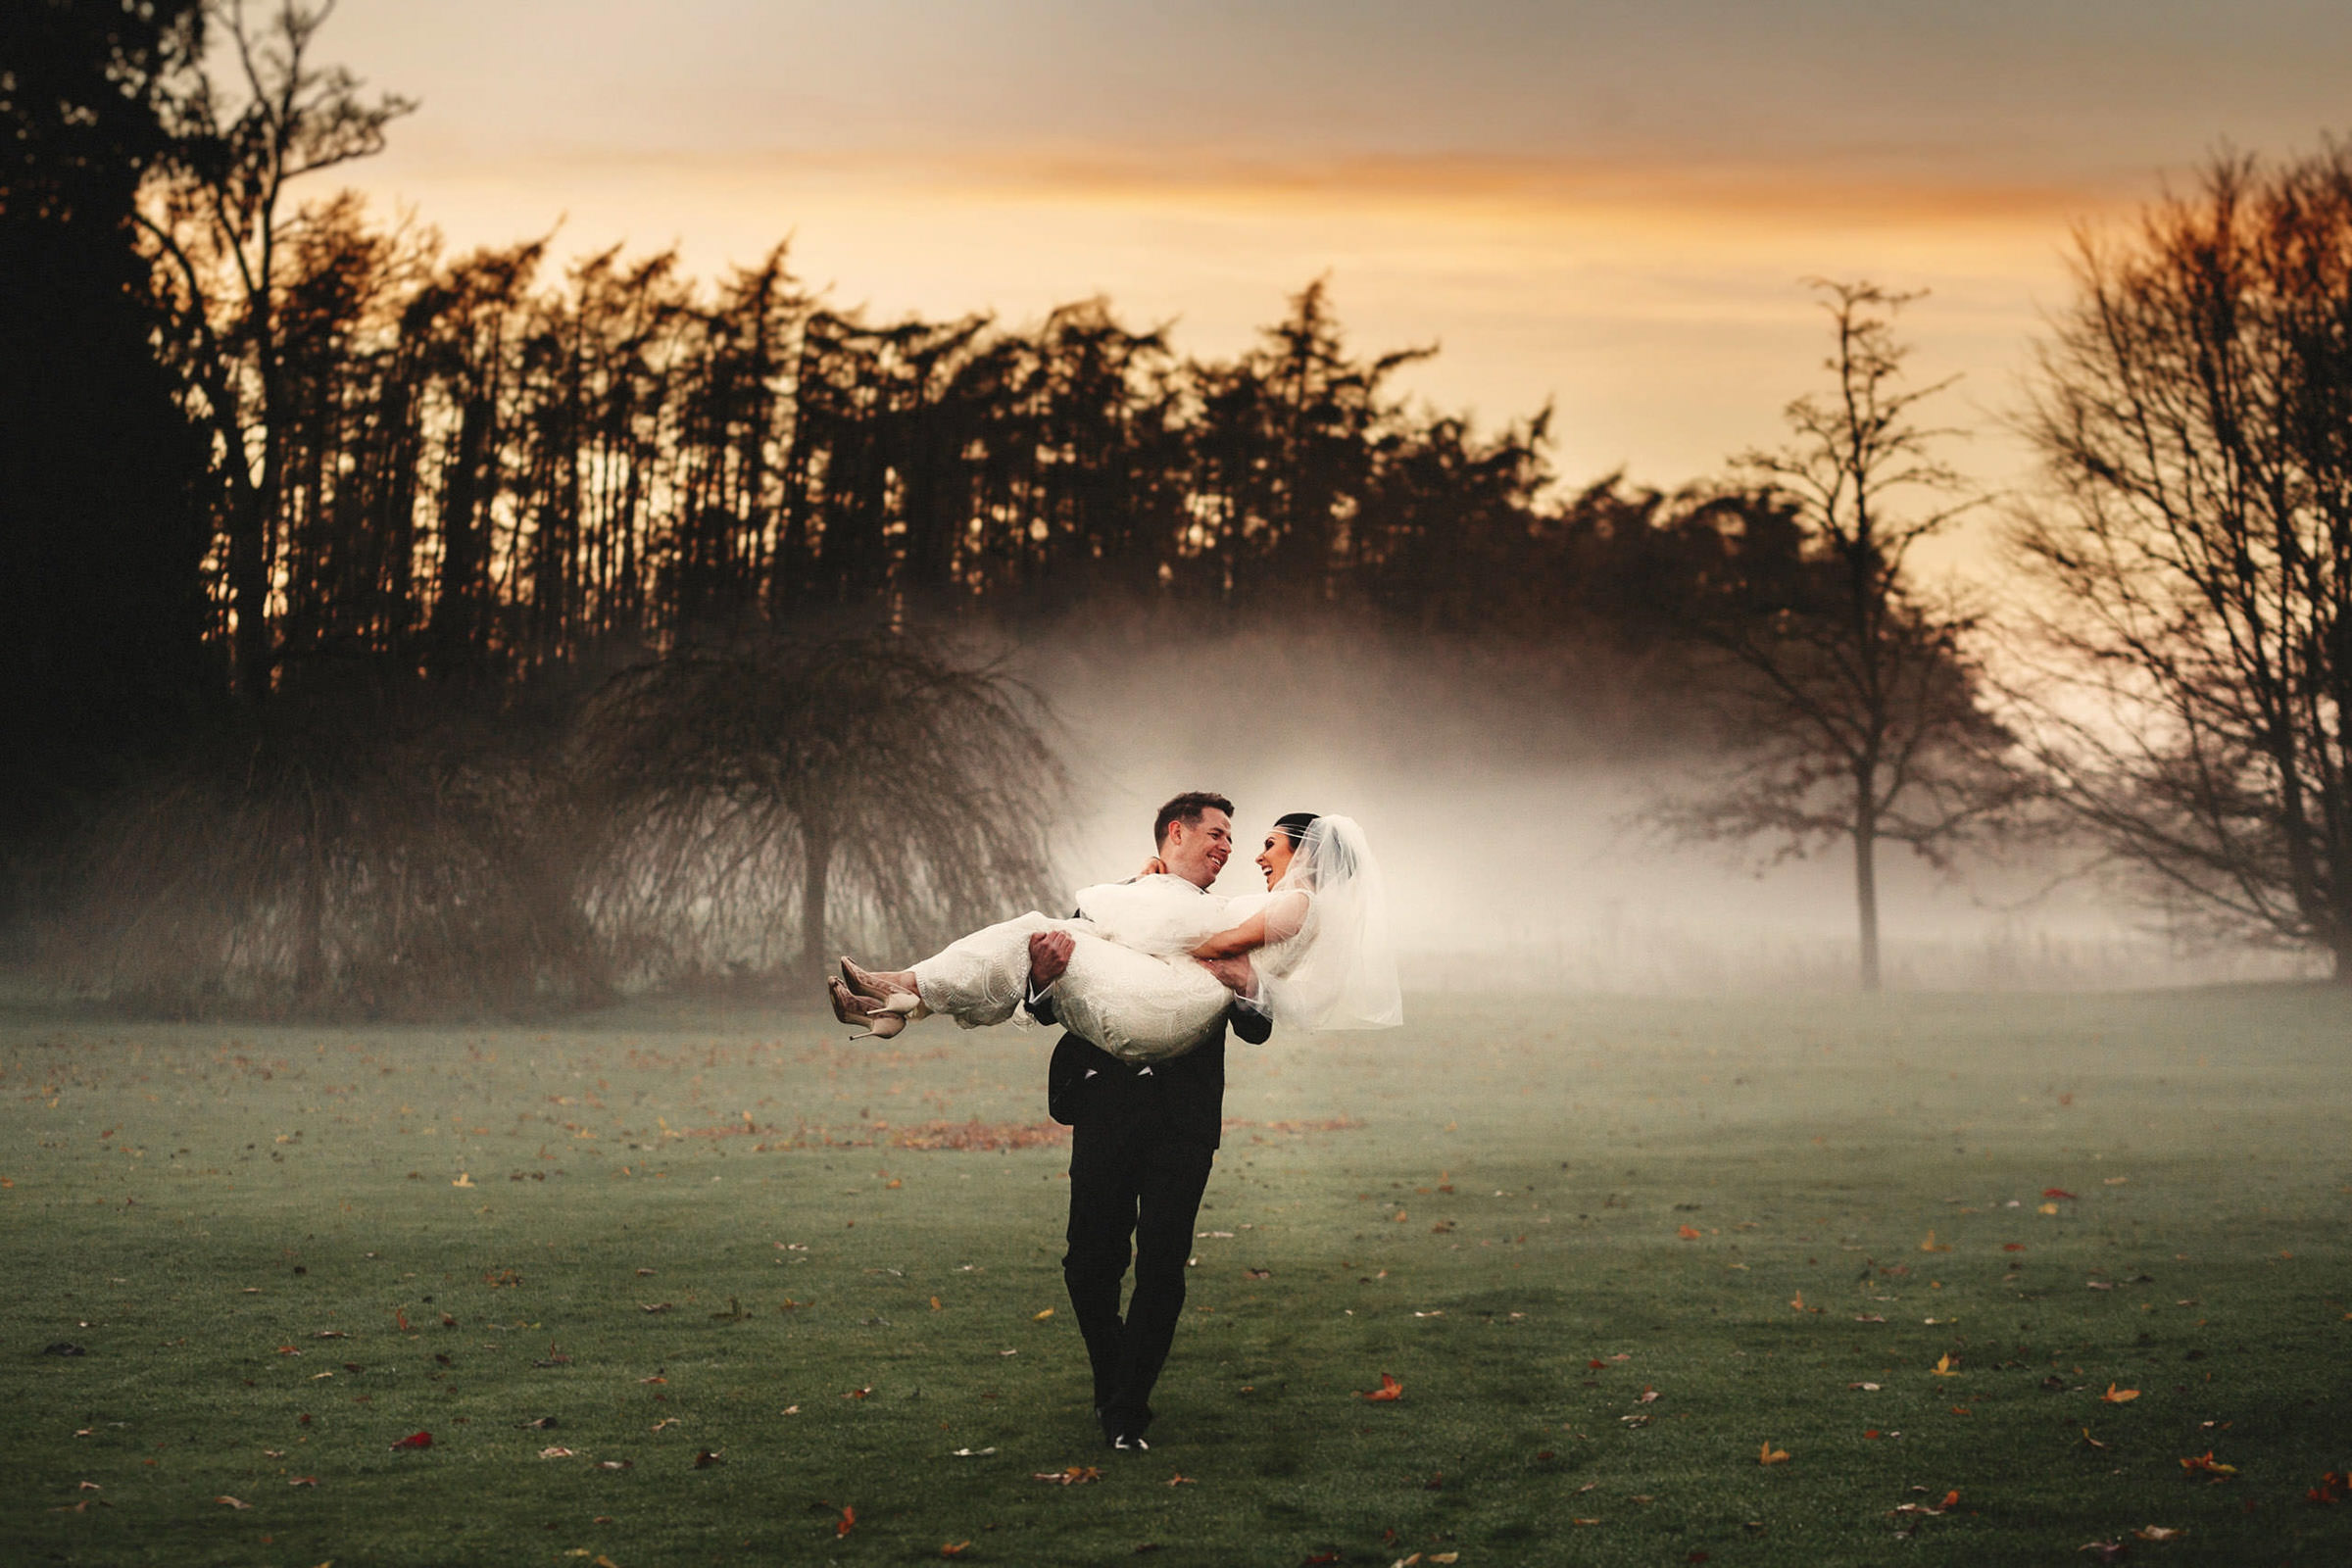 Groom carries bride on misty Ireland field - photo by Lima Conlon Photography